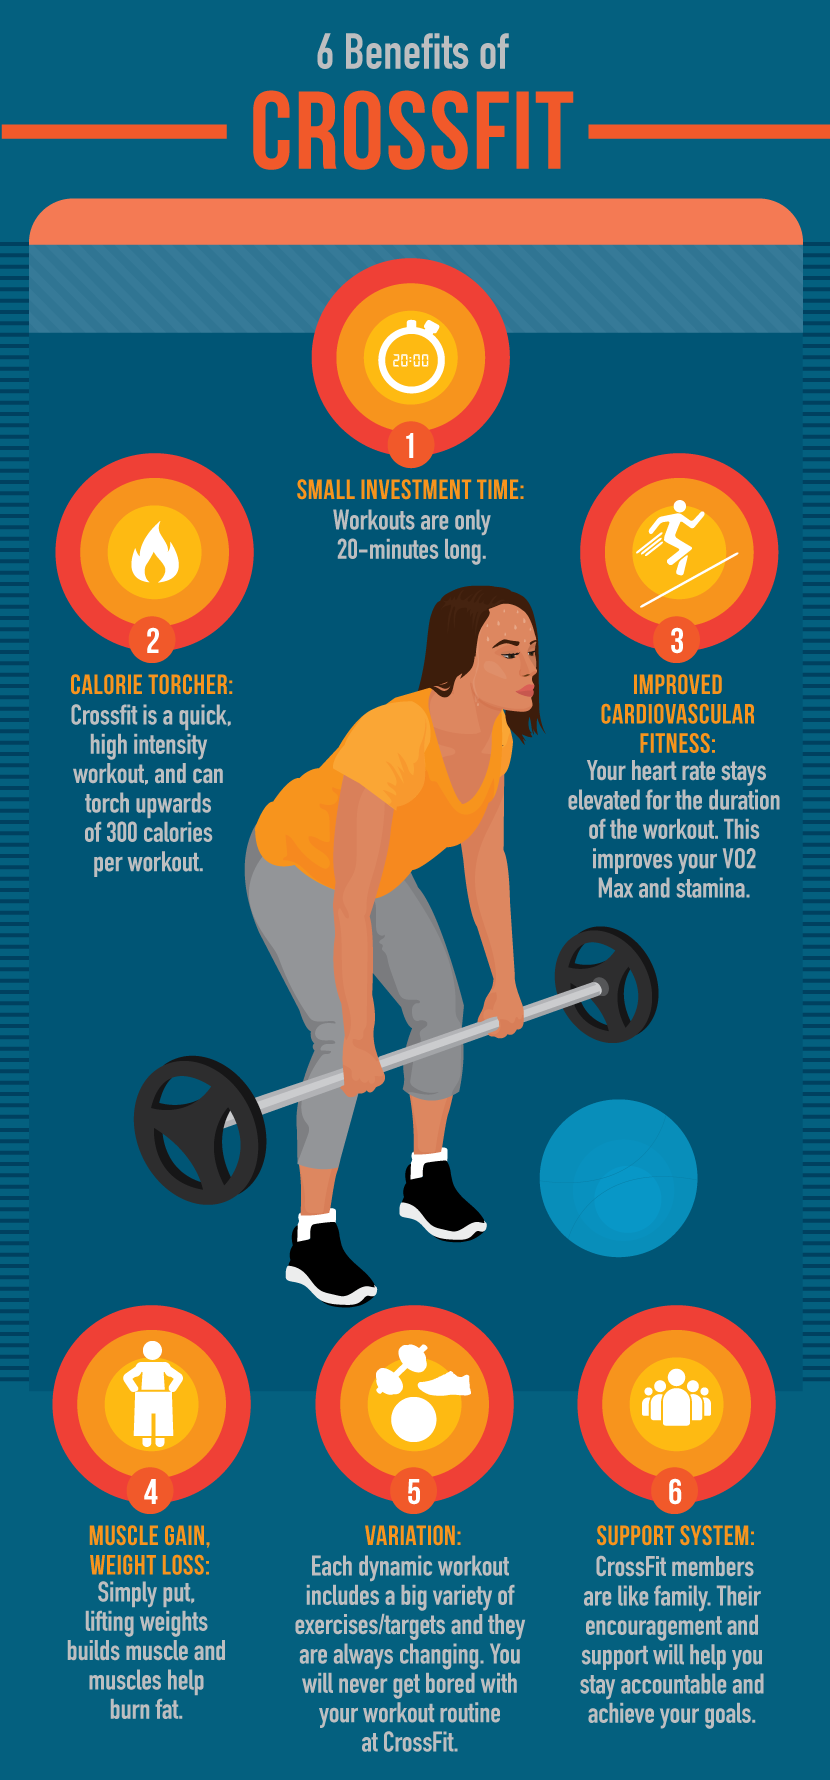 CrossFit - 6 Benefits of CrossFit.png